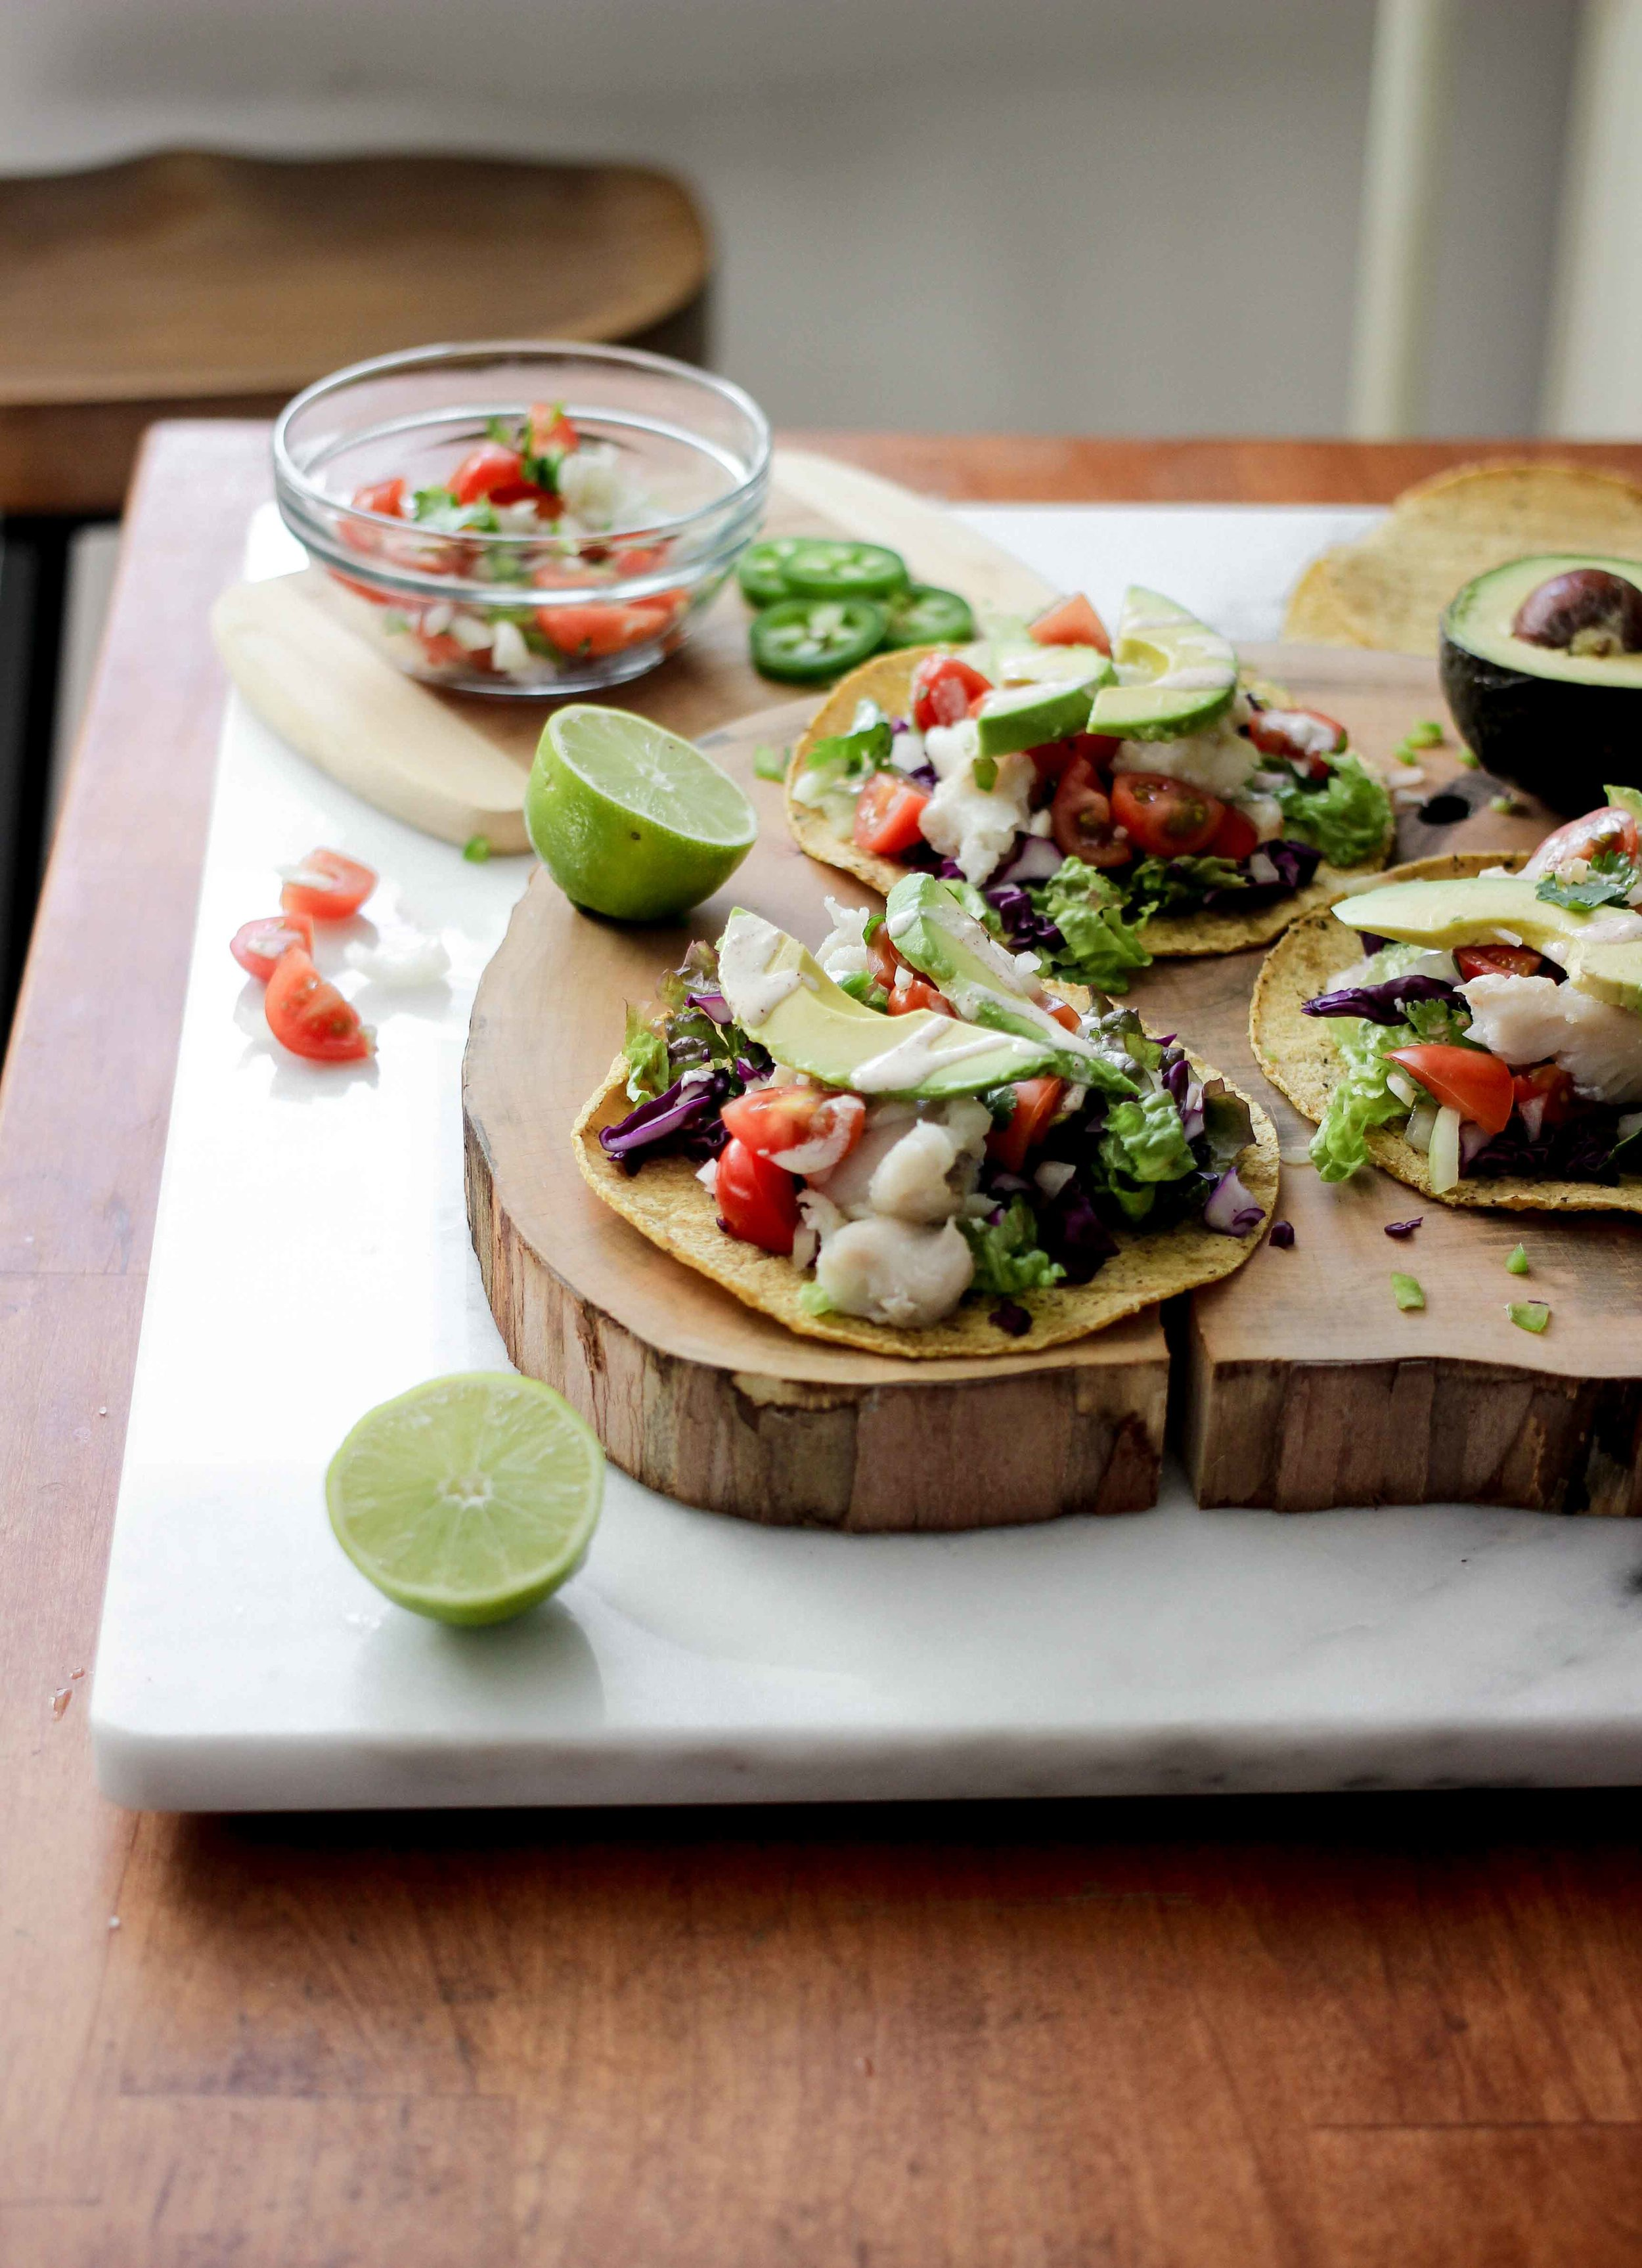 Authentic Mexican Tacos - Mexican Baja California Fish Tacos With Homemade Chipotle Aioli - The Well Essentials